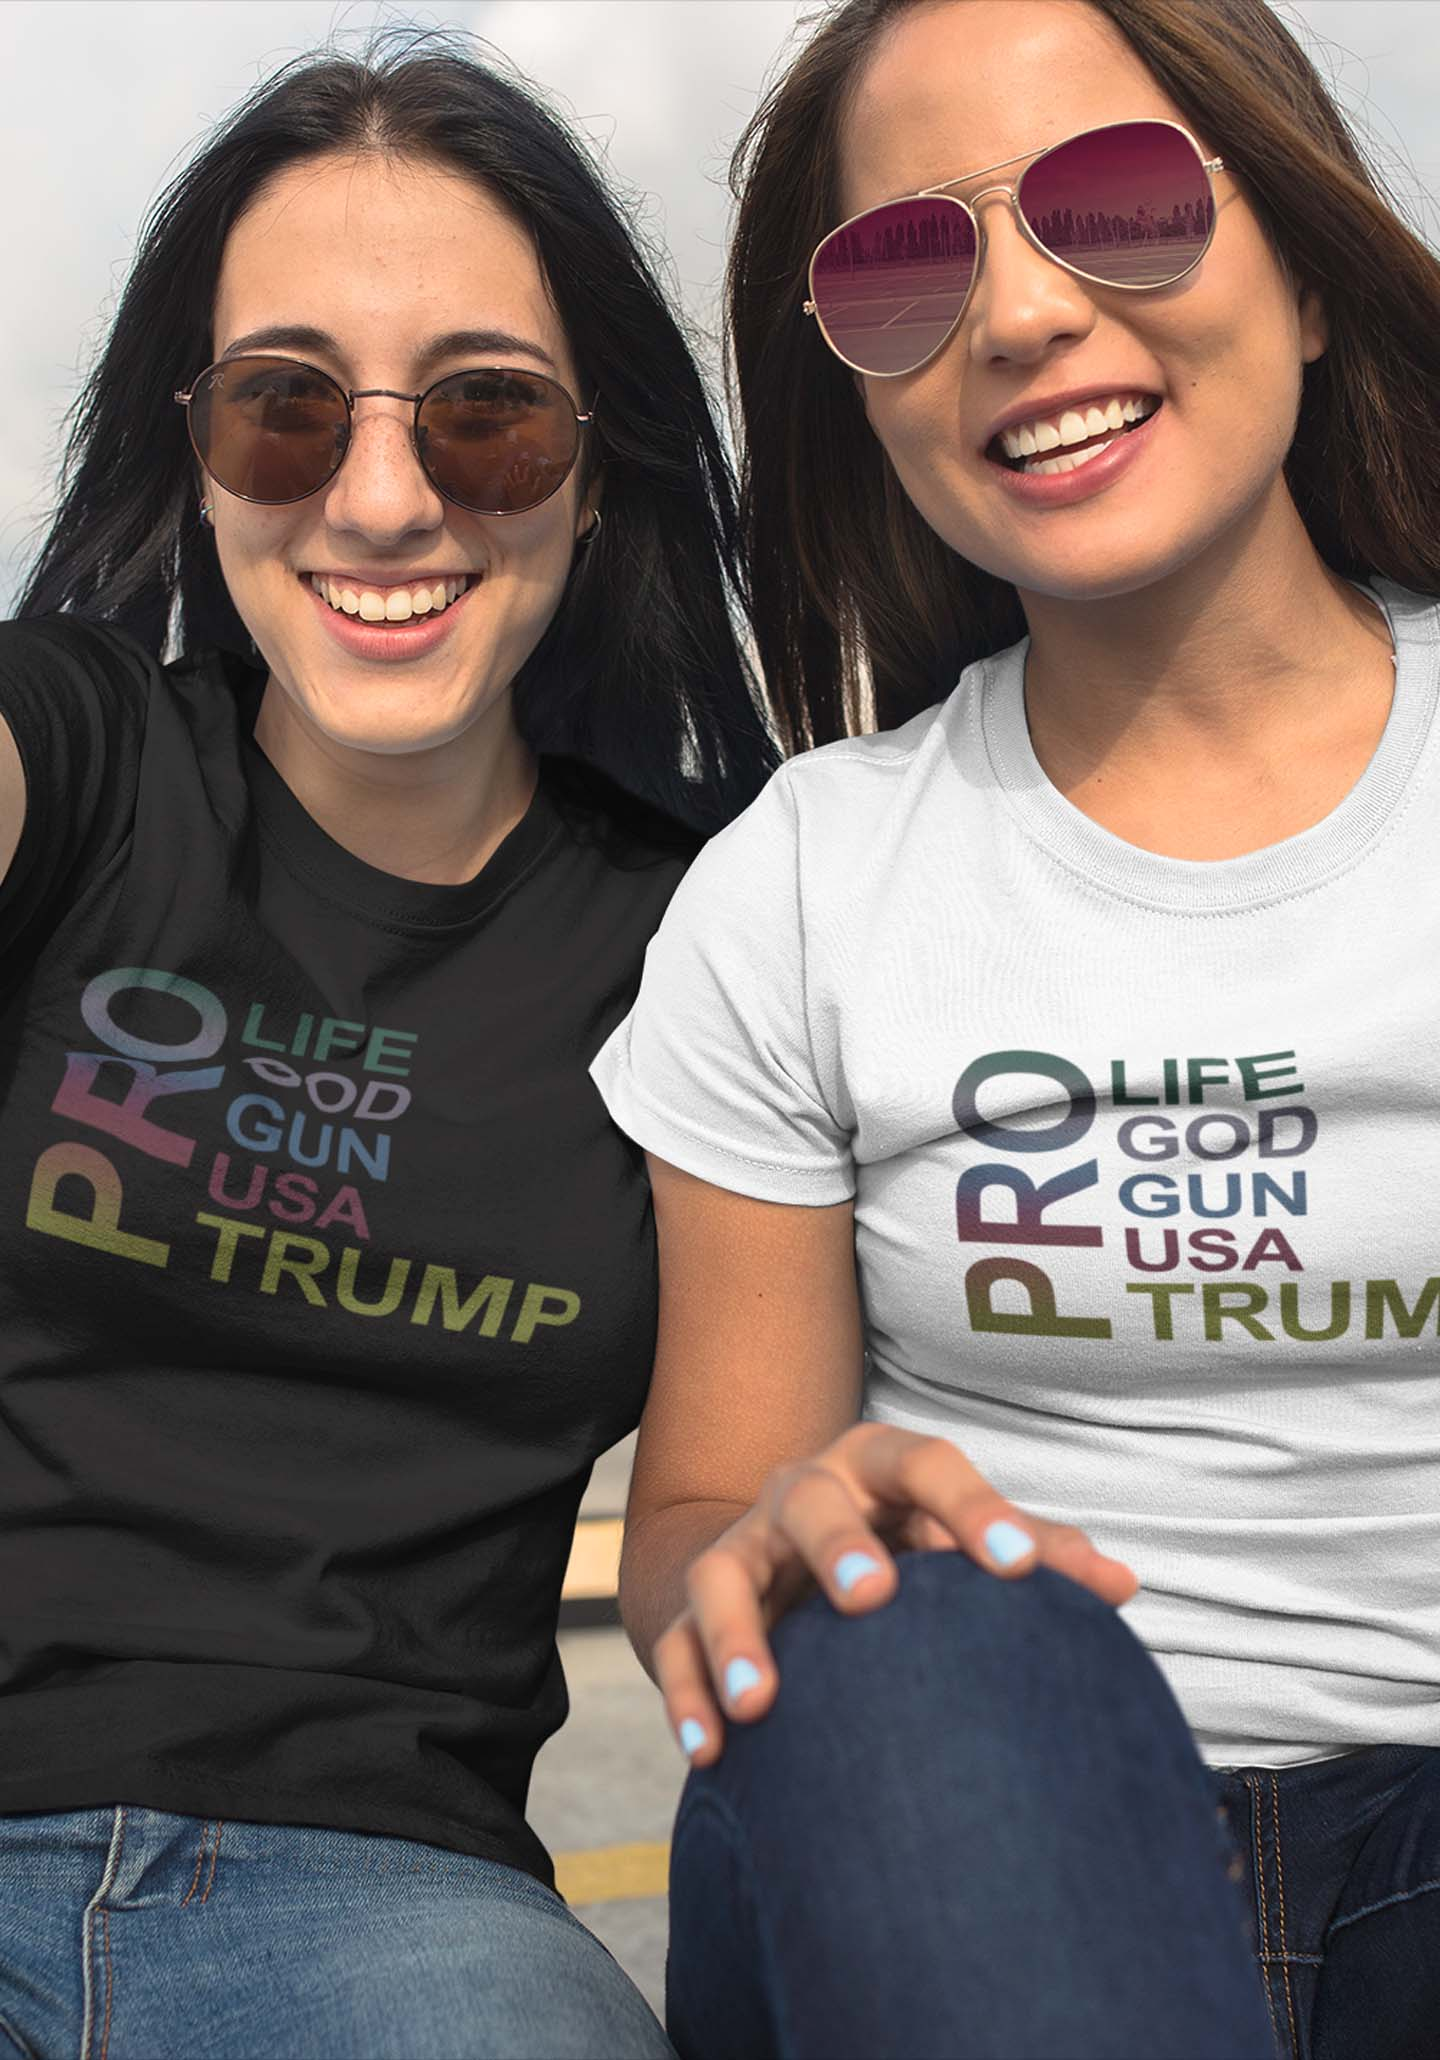 Pro Trump Shirt, Trump 2020 Shirt, Make Liberals Cry Again, Pro Trump T Shirt, Pro Life God USA MAGA Retro ,Unisex Premium Soft Touch Tee